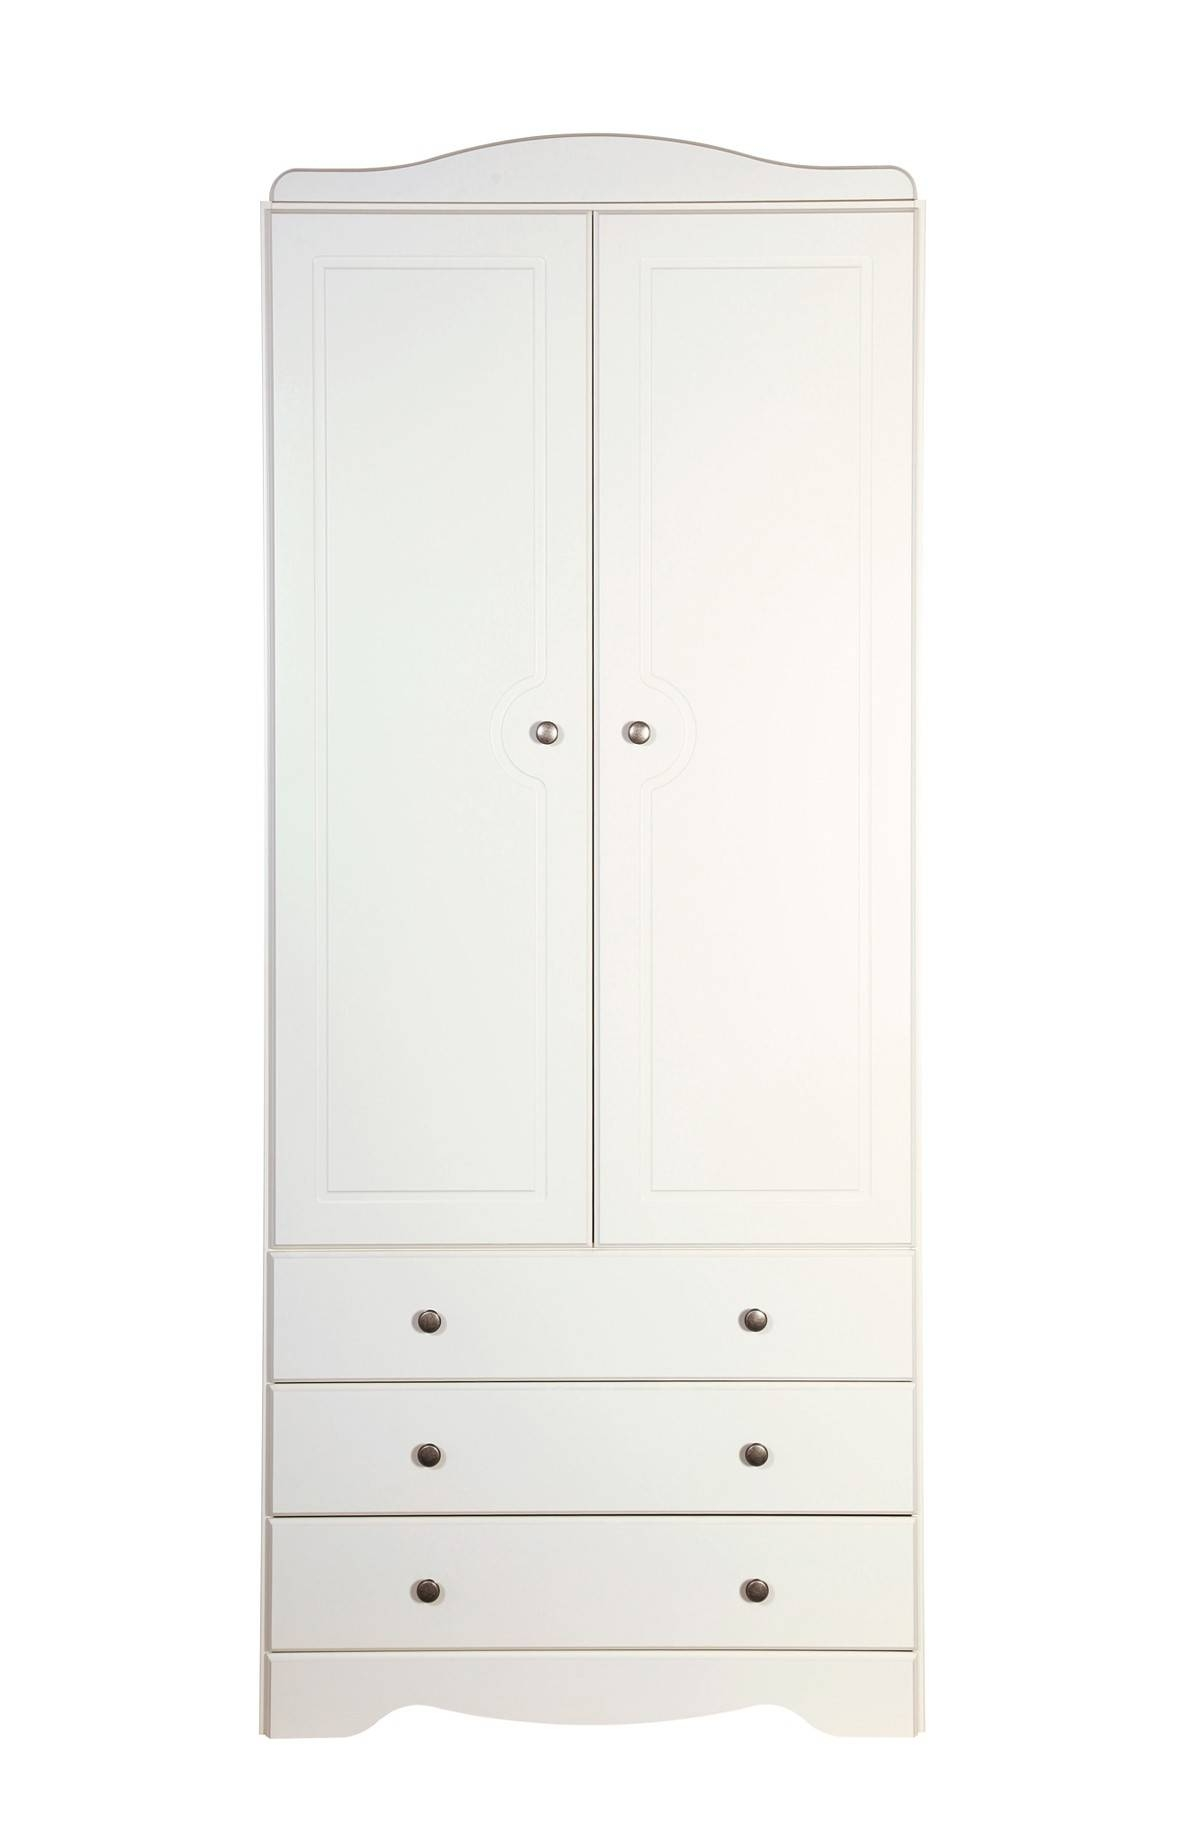 Milford 2 Door 3 Drawer Wardrobe White From The Original Factory Shop in White 3 Door Wardrobes With Drawers (Image 7 of 15)